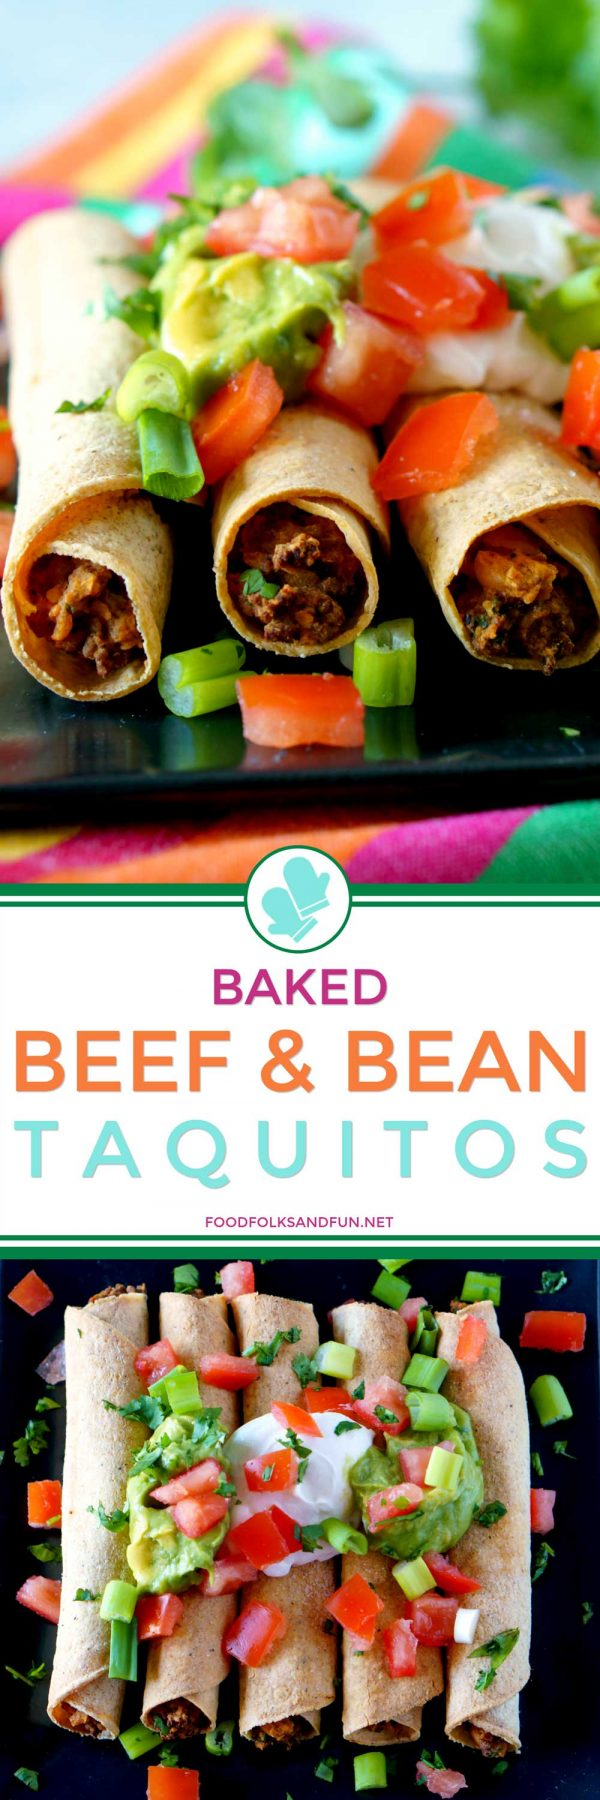 Freezer-friendly Beef Taquitos.